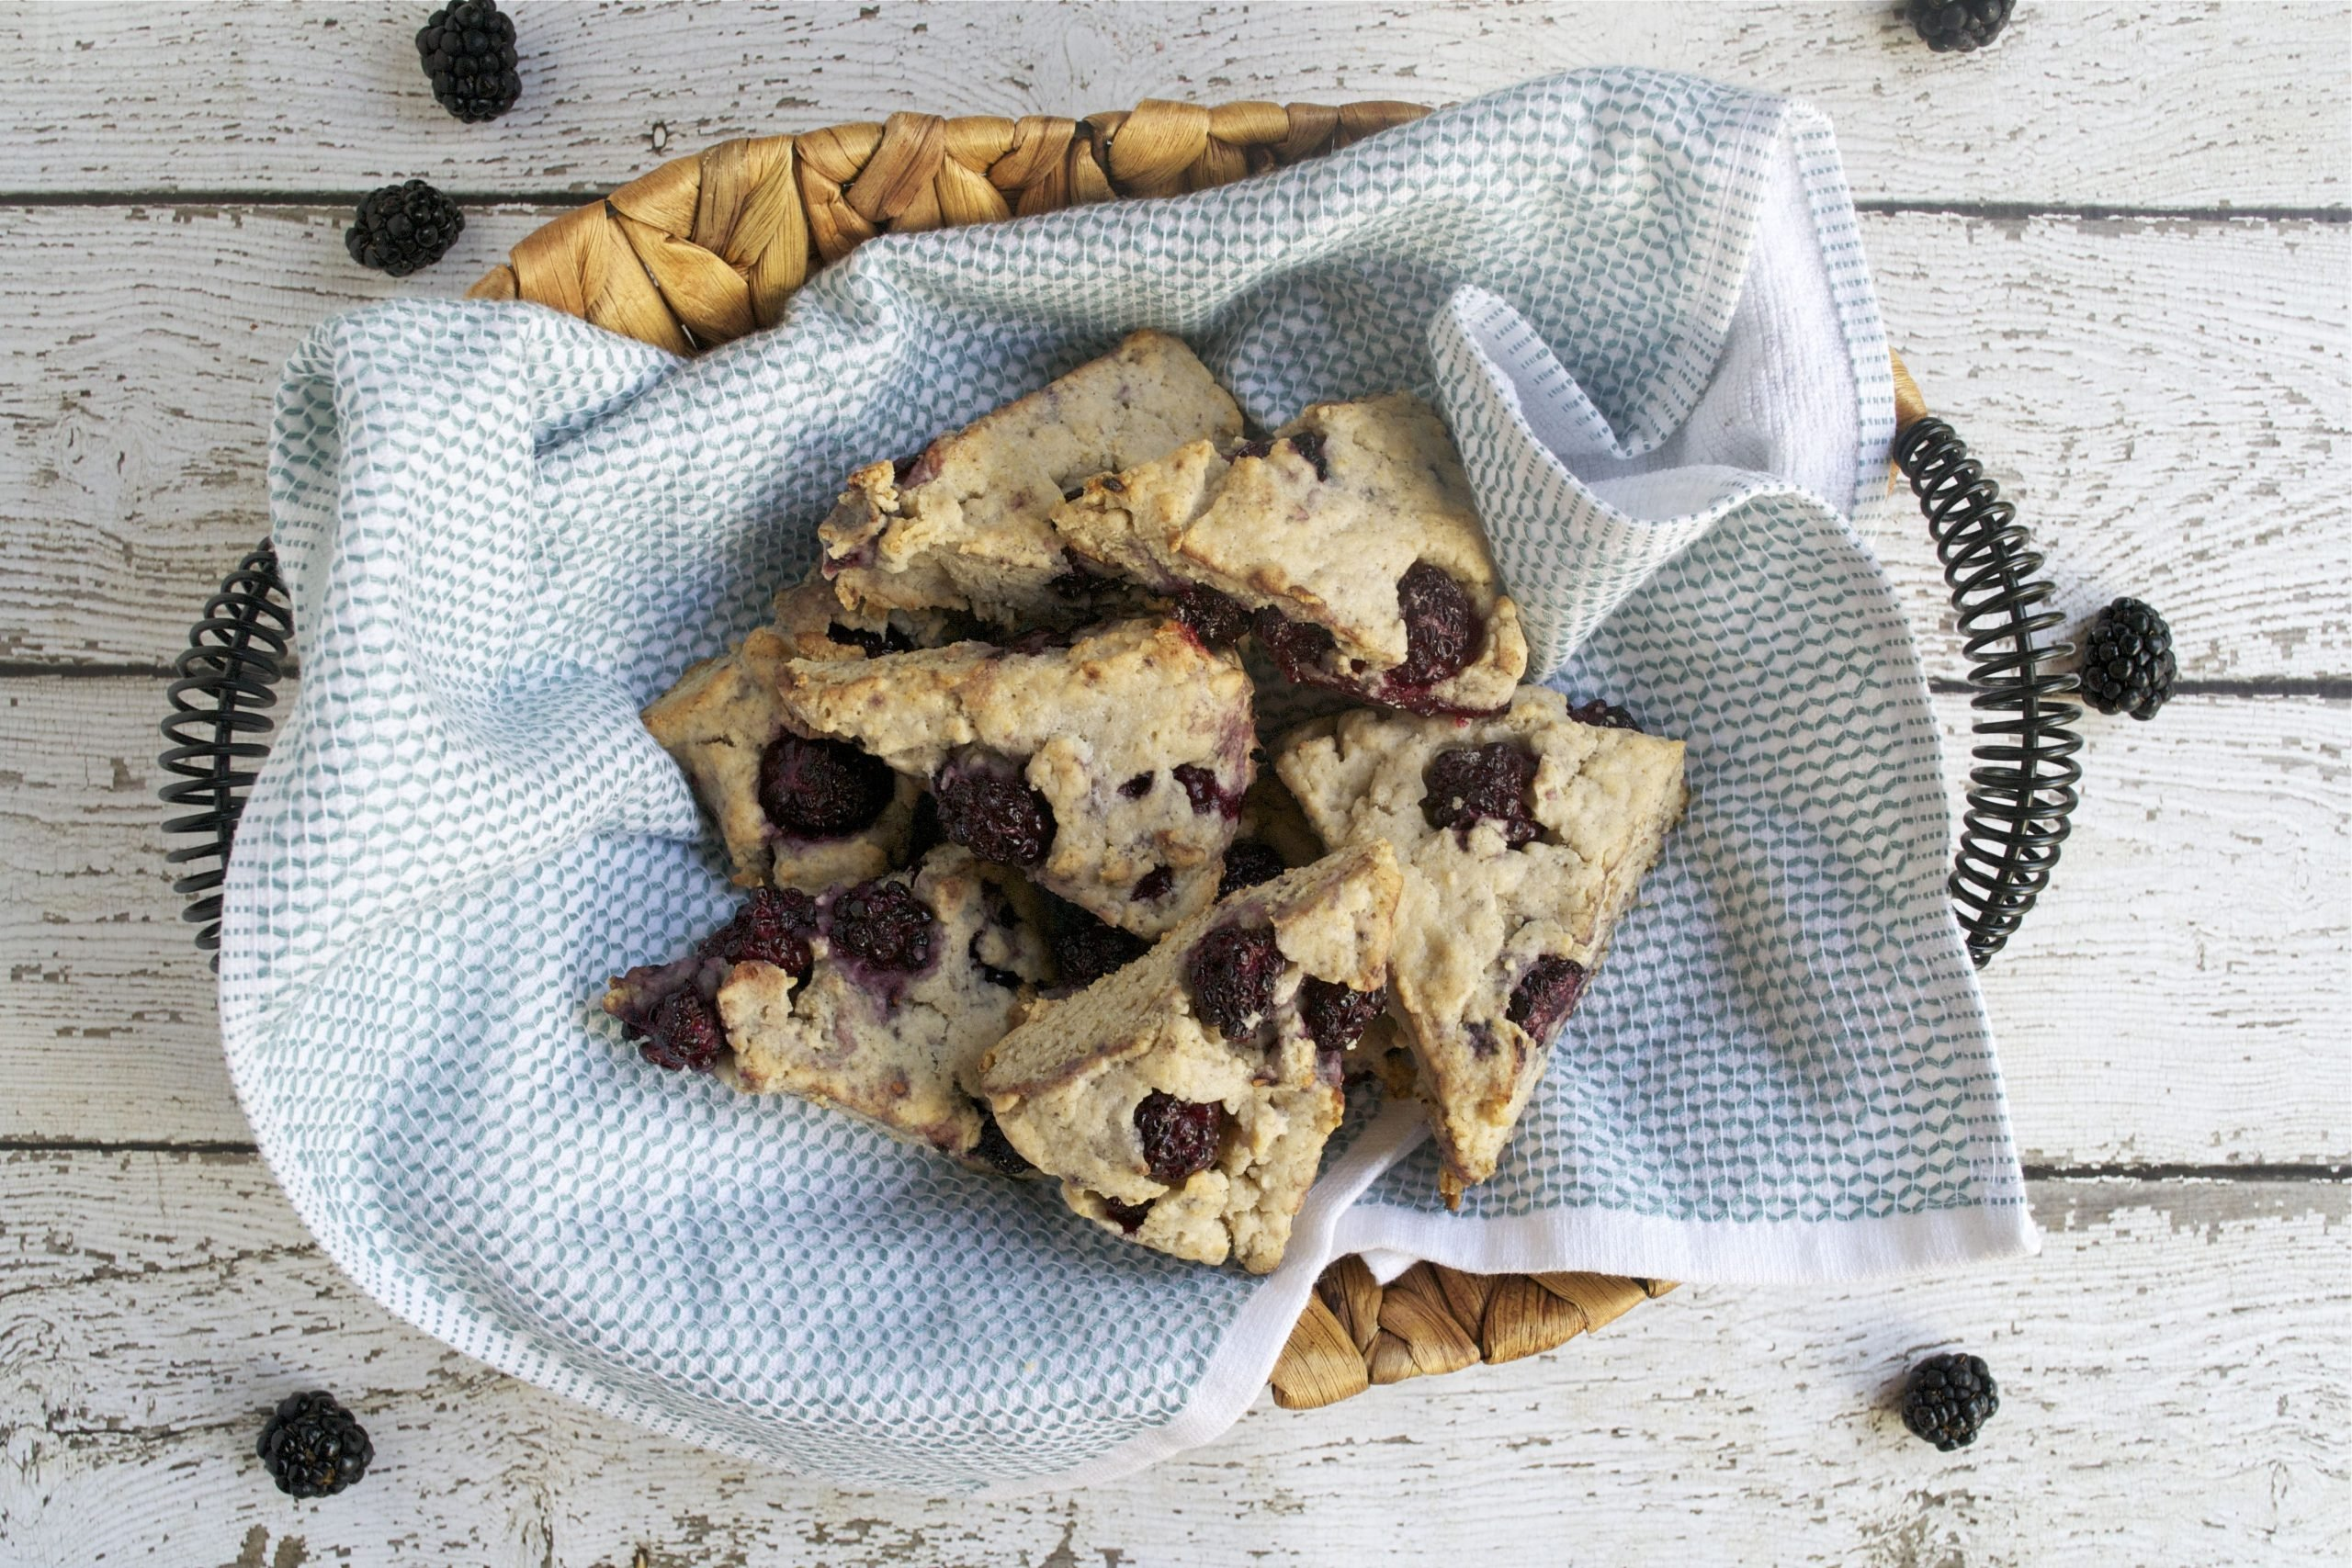 Blackberry Scones - gluten-free, vegan, sugar-free | A Dash of Megnut